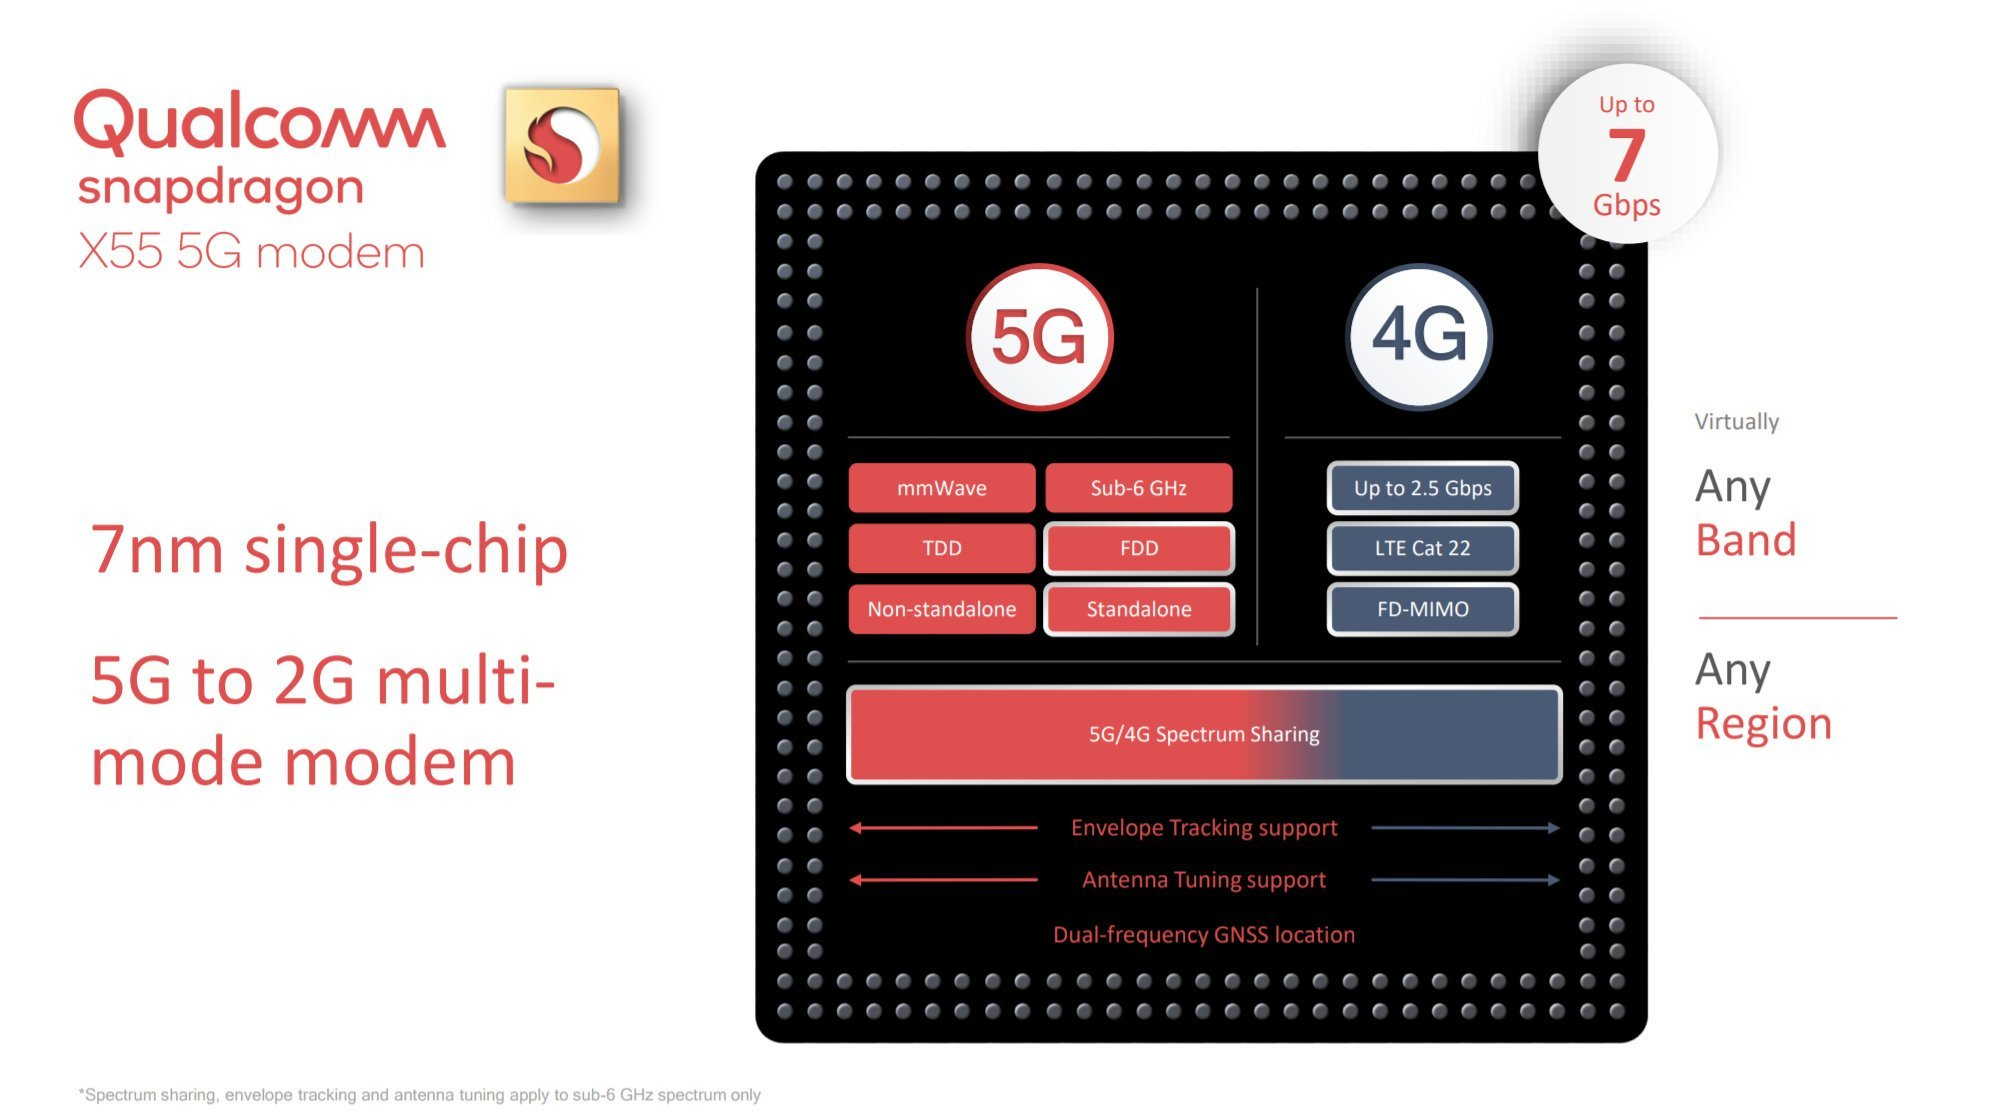 Qualcomm Snapdragon X55 : un modem 5G qui veut faciliter la transition